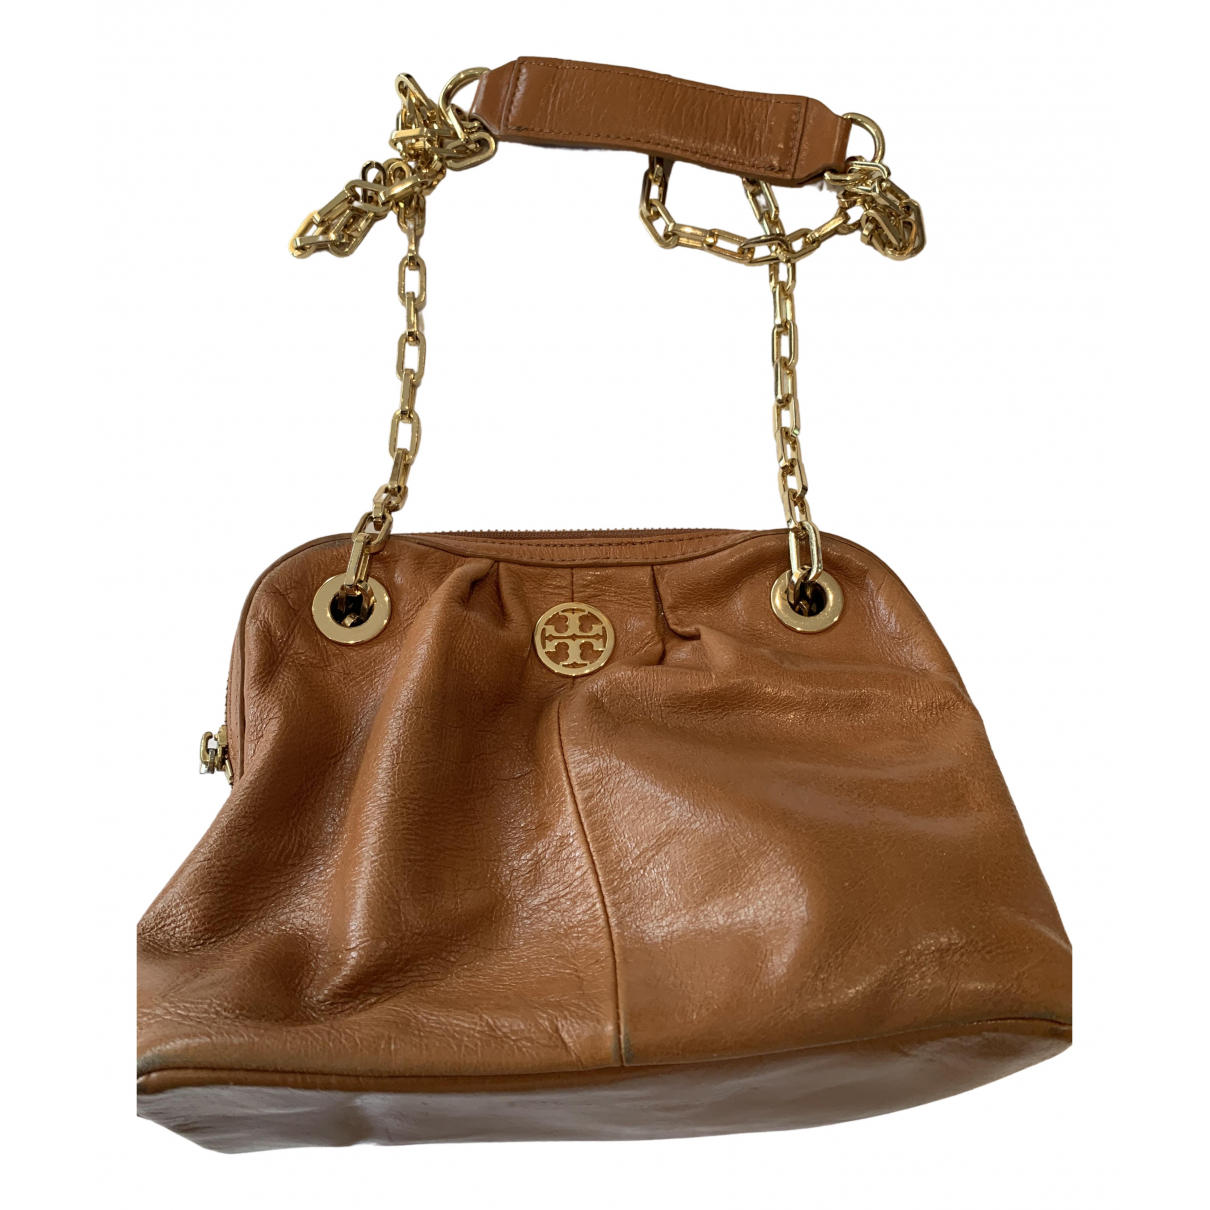 Tory Burch \N Brown Leather Clutch bag for Women \N